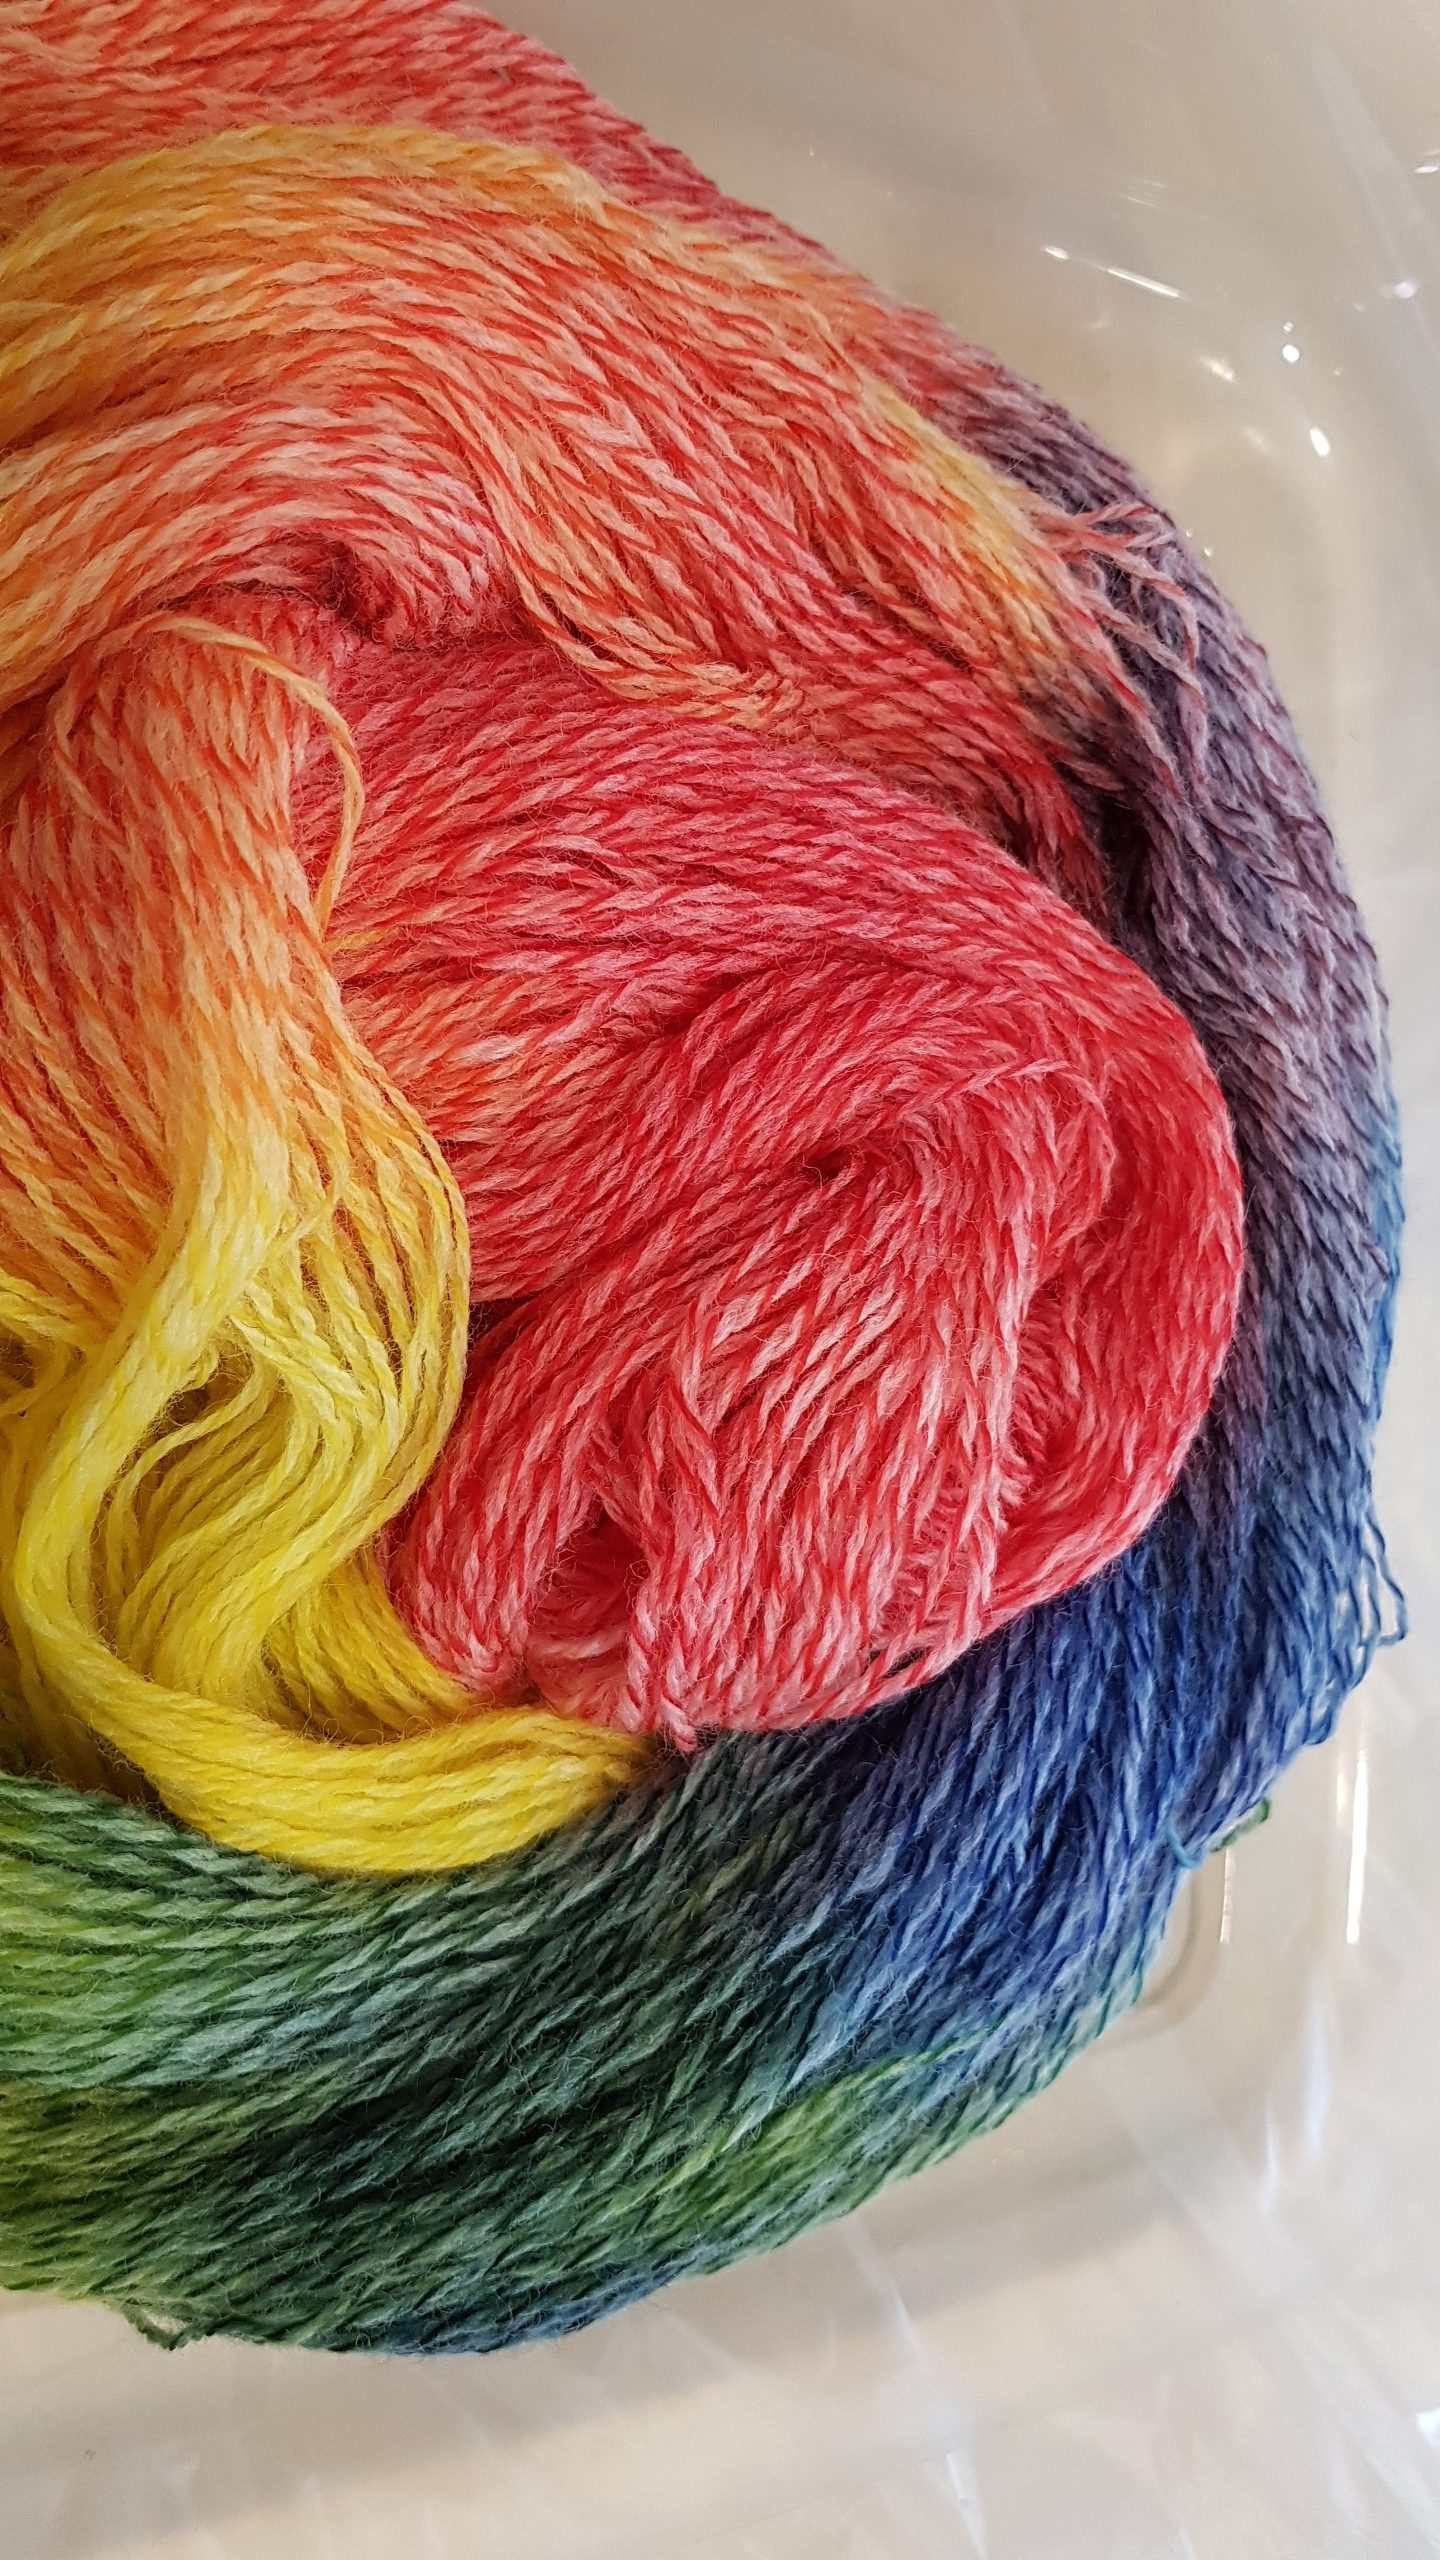 Wool tweed sock yarn hand-dyed with DT Craft & Design procion mx dyes